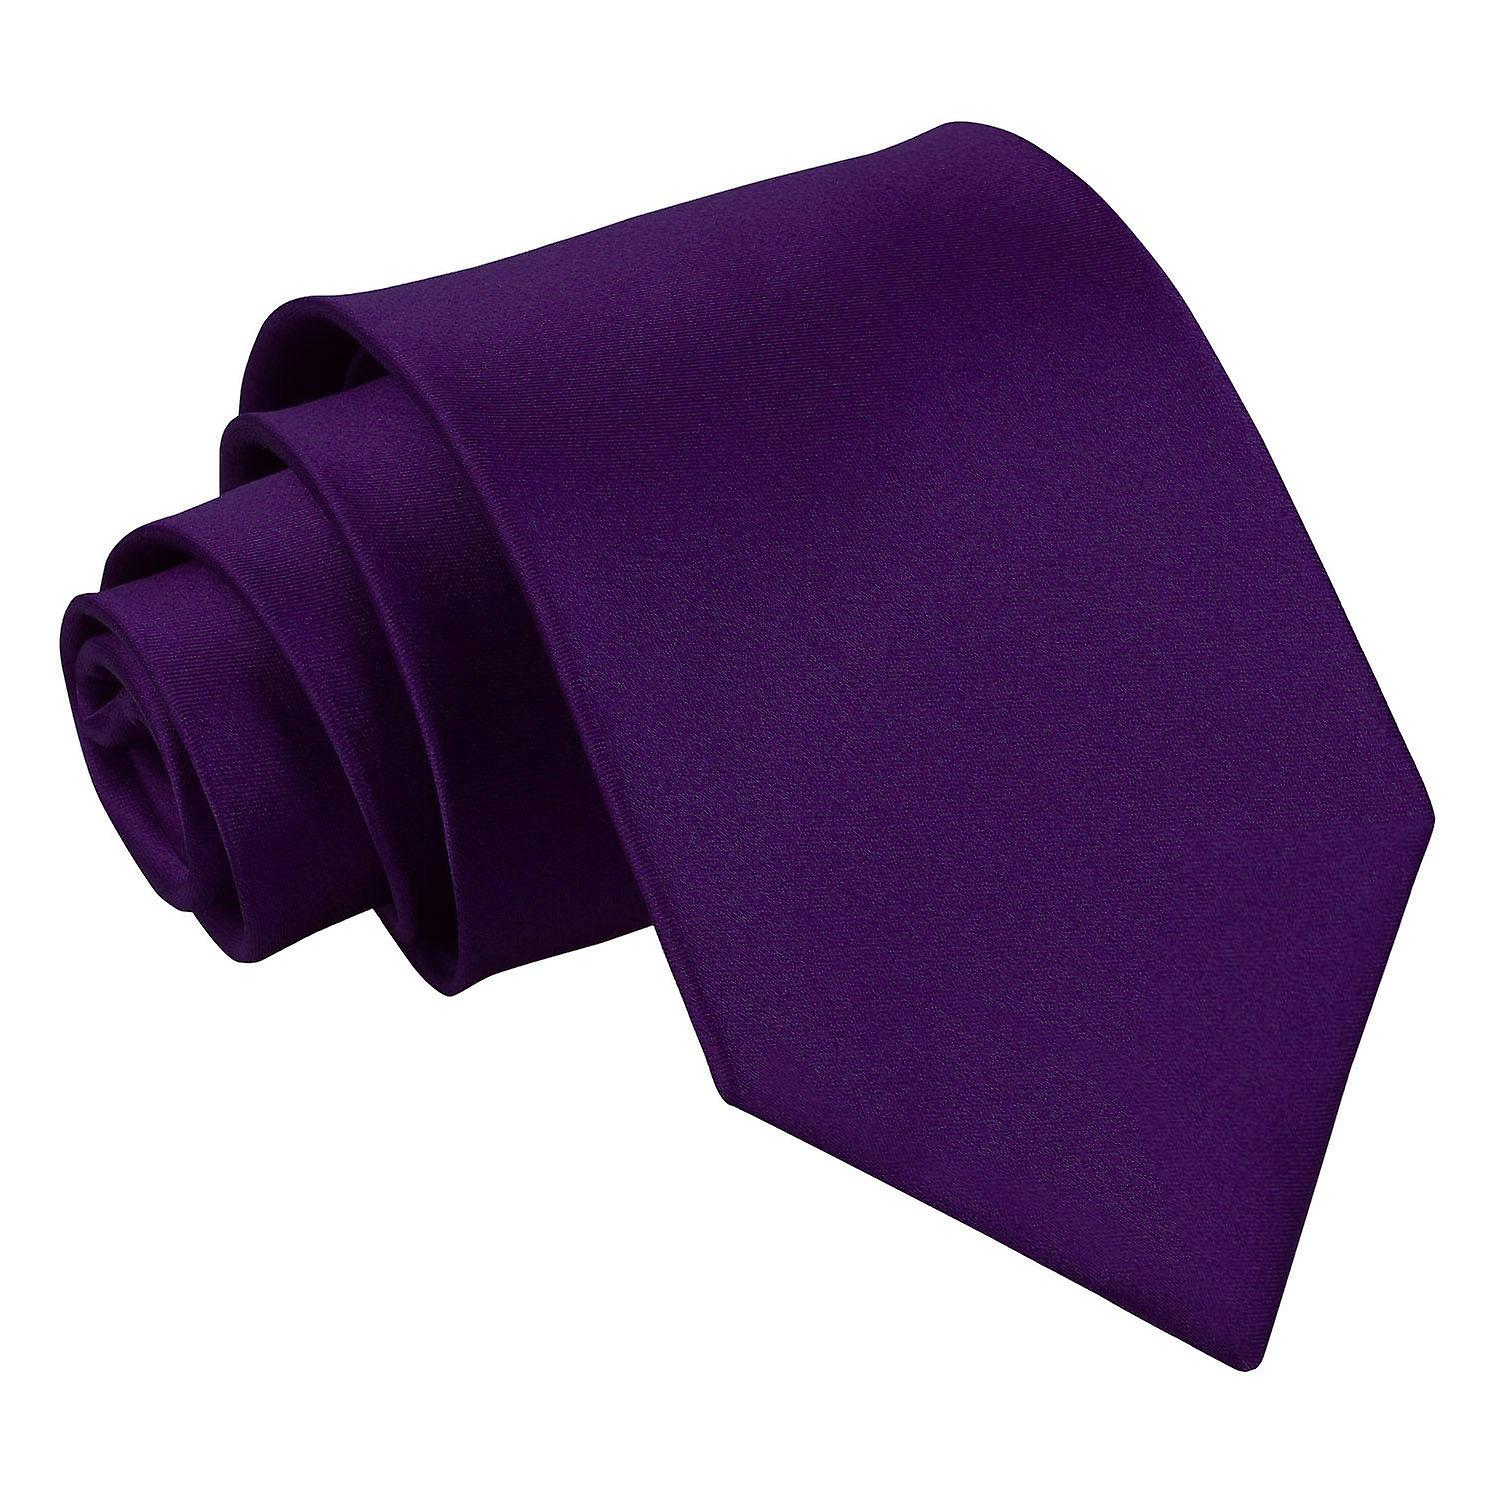 Plain Purple Satin Tie